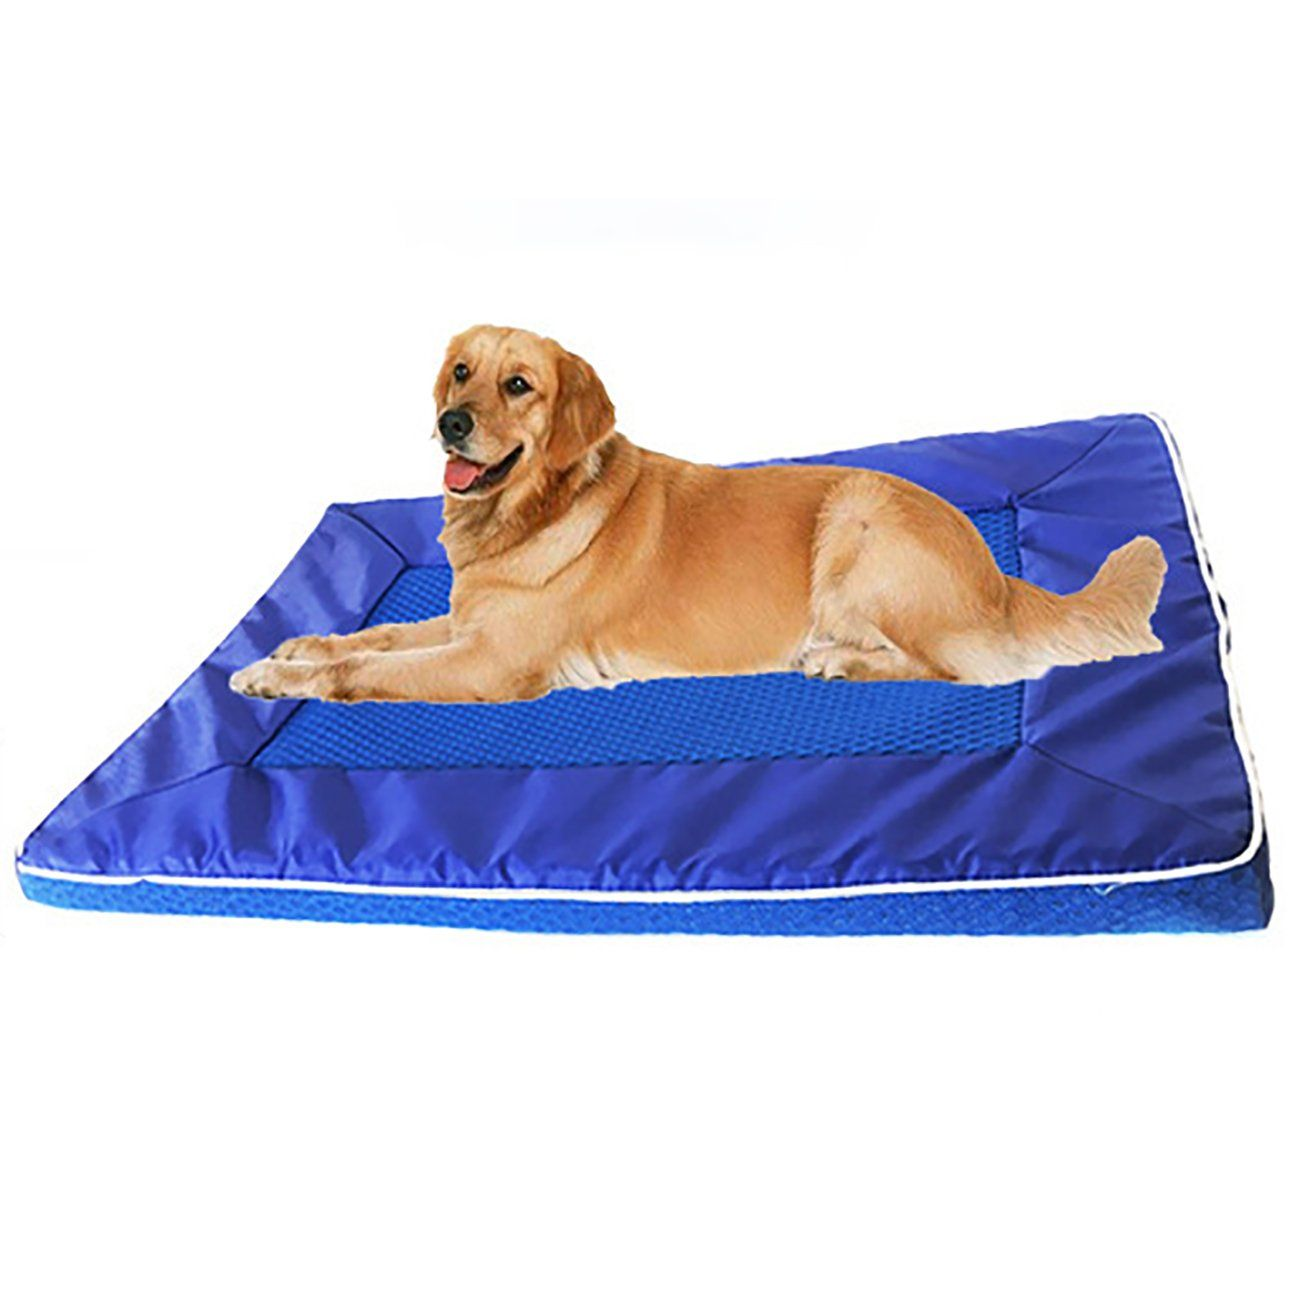 Uheng Pet Dog Cooling Mat Pets Cool Bed Cat House Ice Pad Chilly Ice Cooler Bed For Dogs Pets Puppy Cushion Mat Cold Pillow Beds Cats Coolmat Pads For Kennels